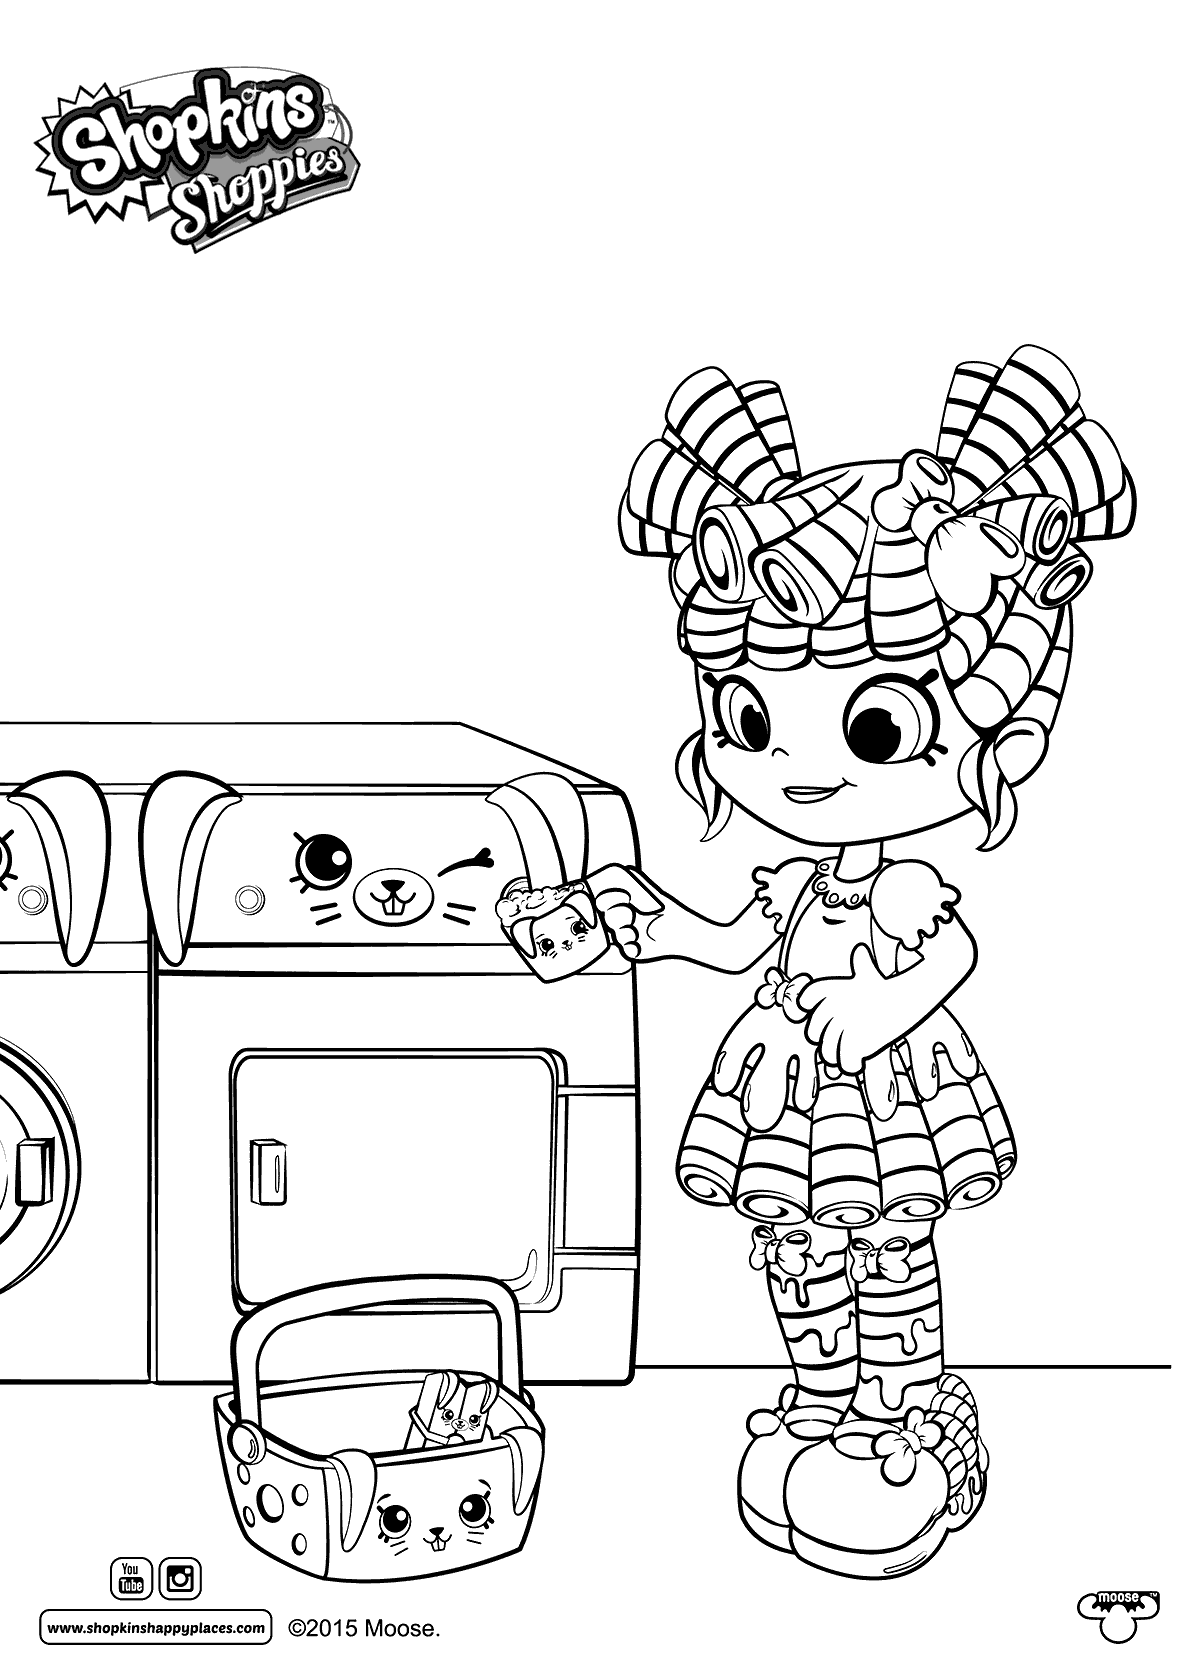 Free Cute Happy Places Shoppies Coloring Pages printable